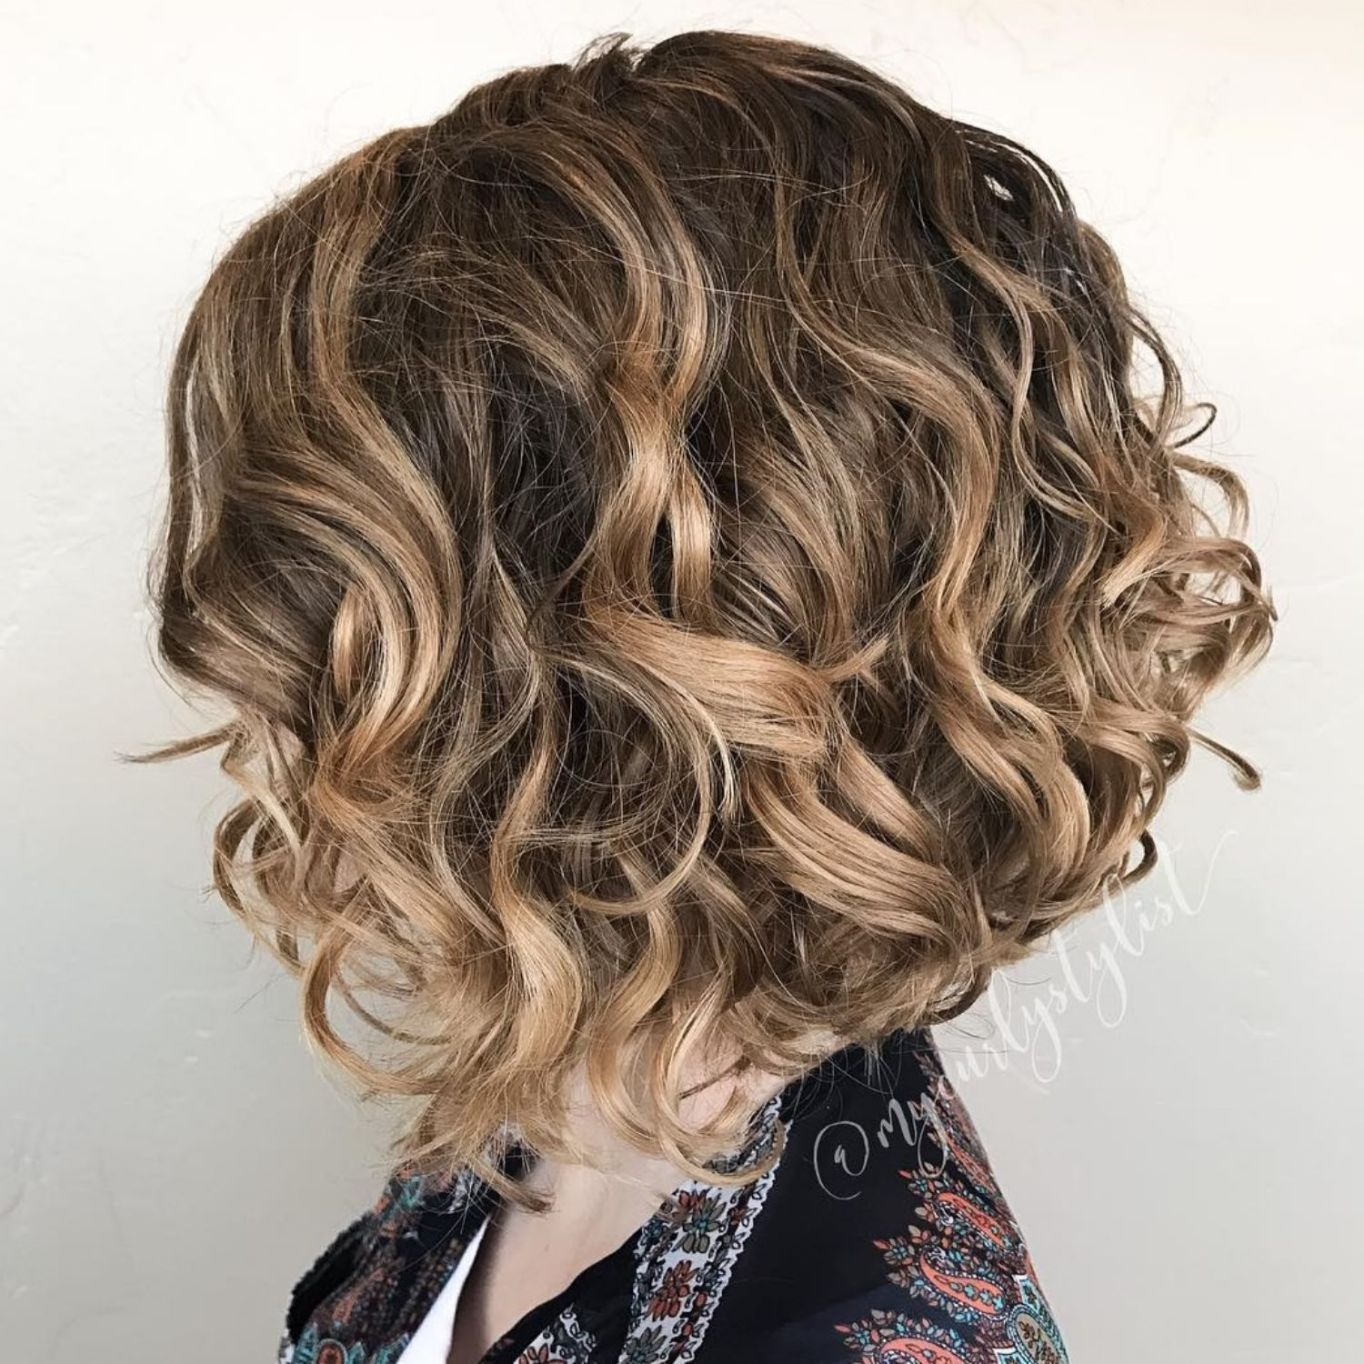 shorts blonde Messy curly